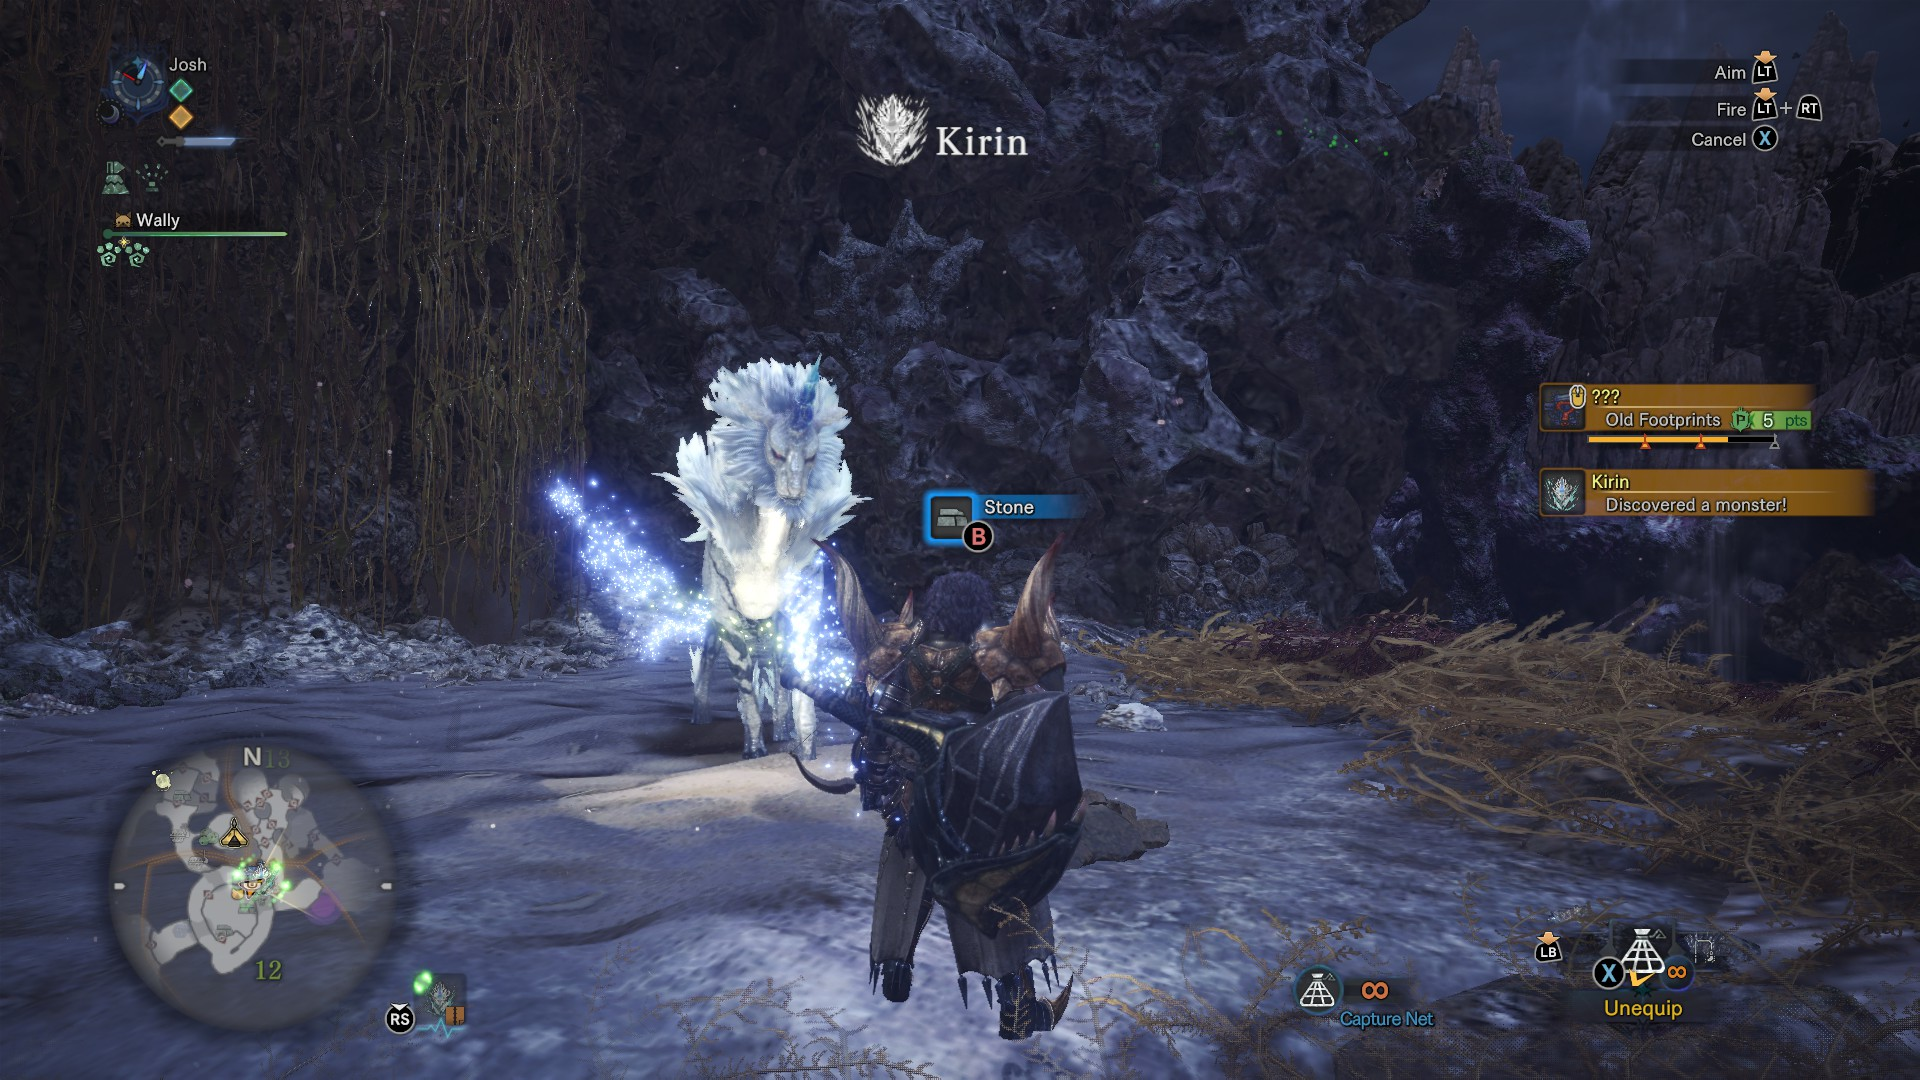 mhw how to find a kirin